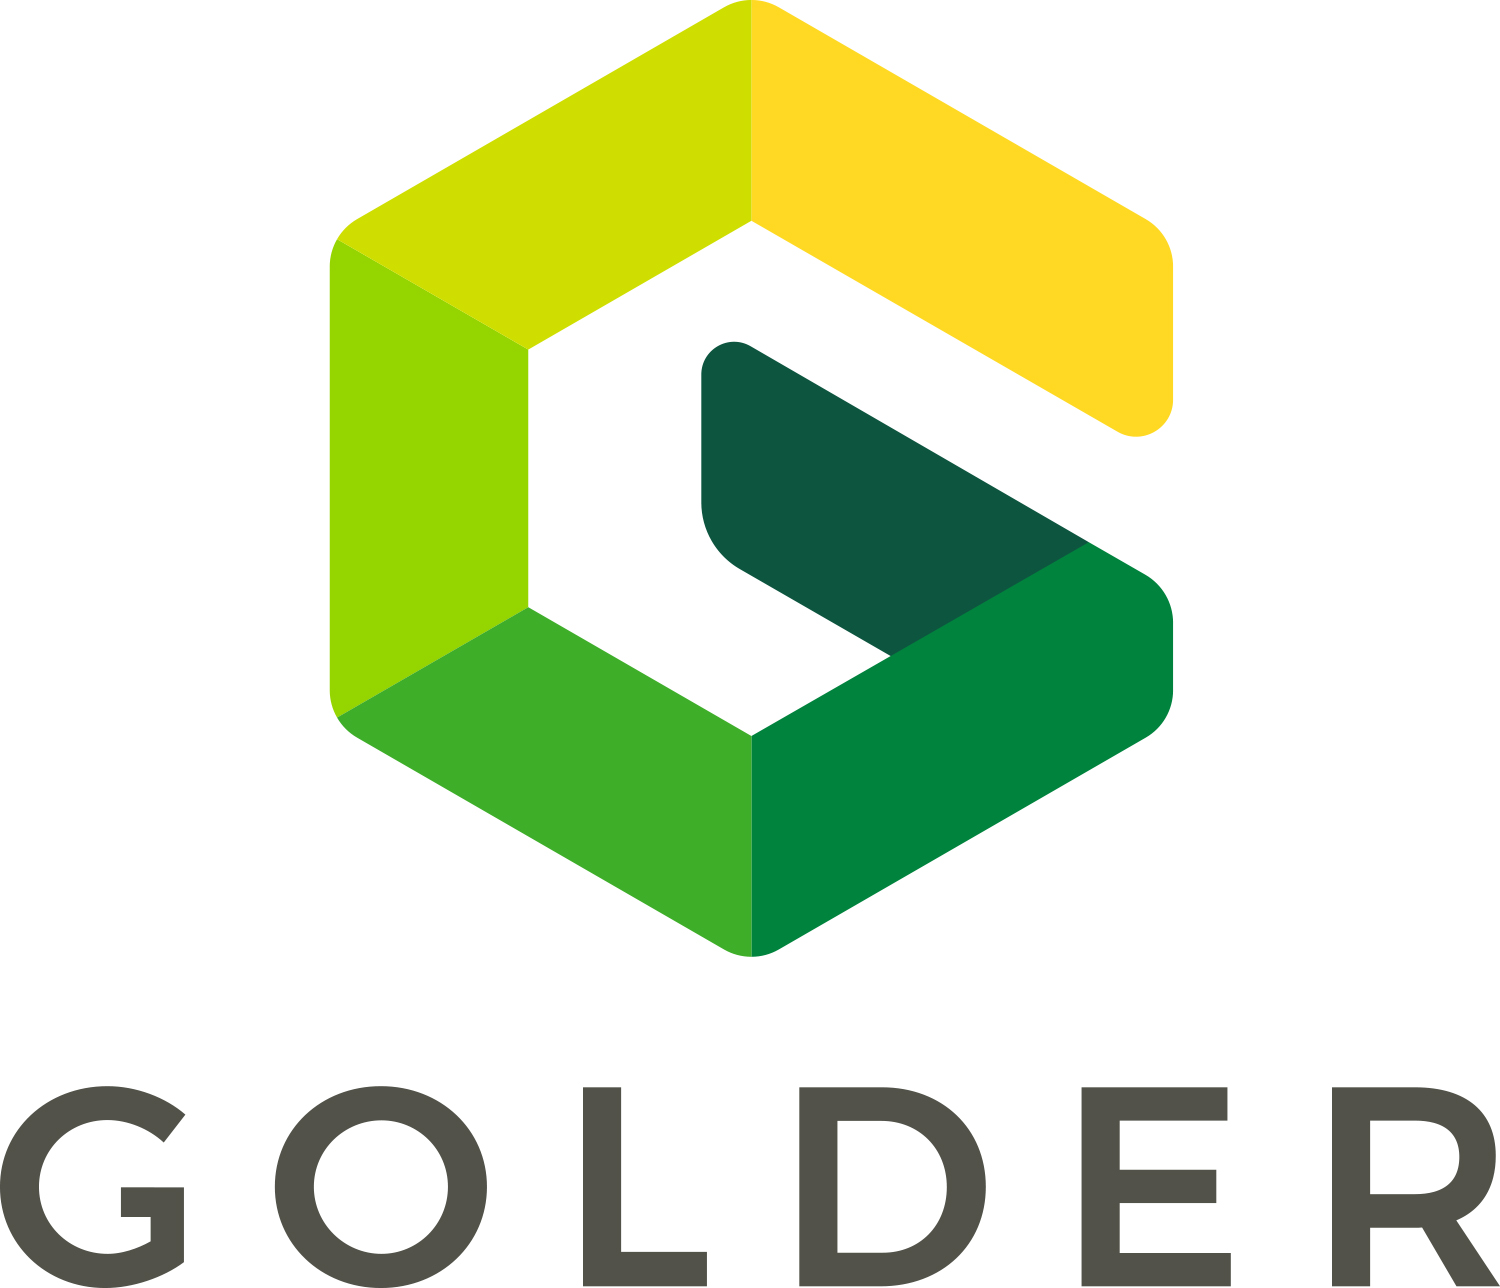 golder_stacked_logo